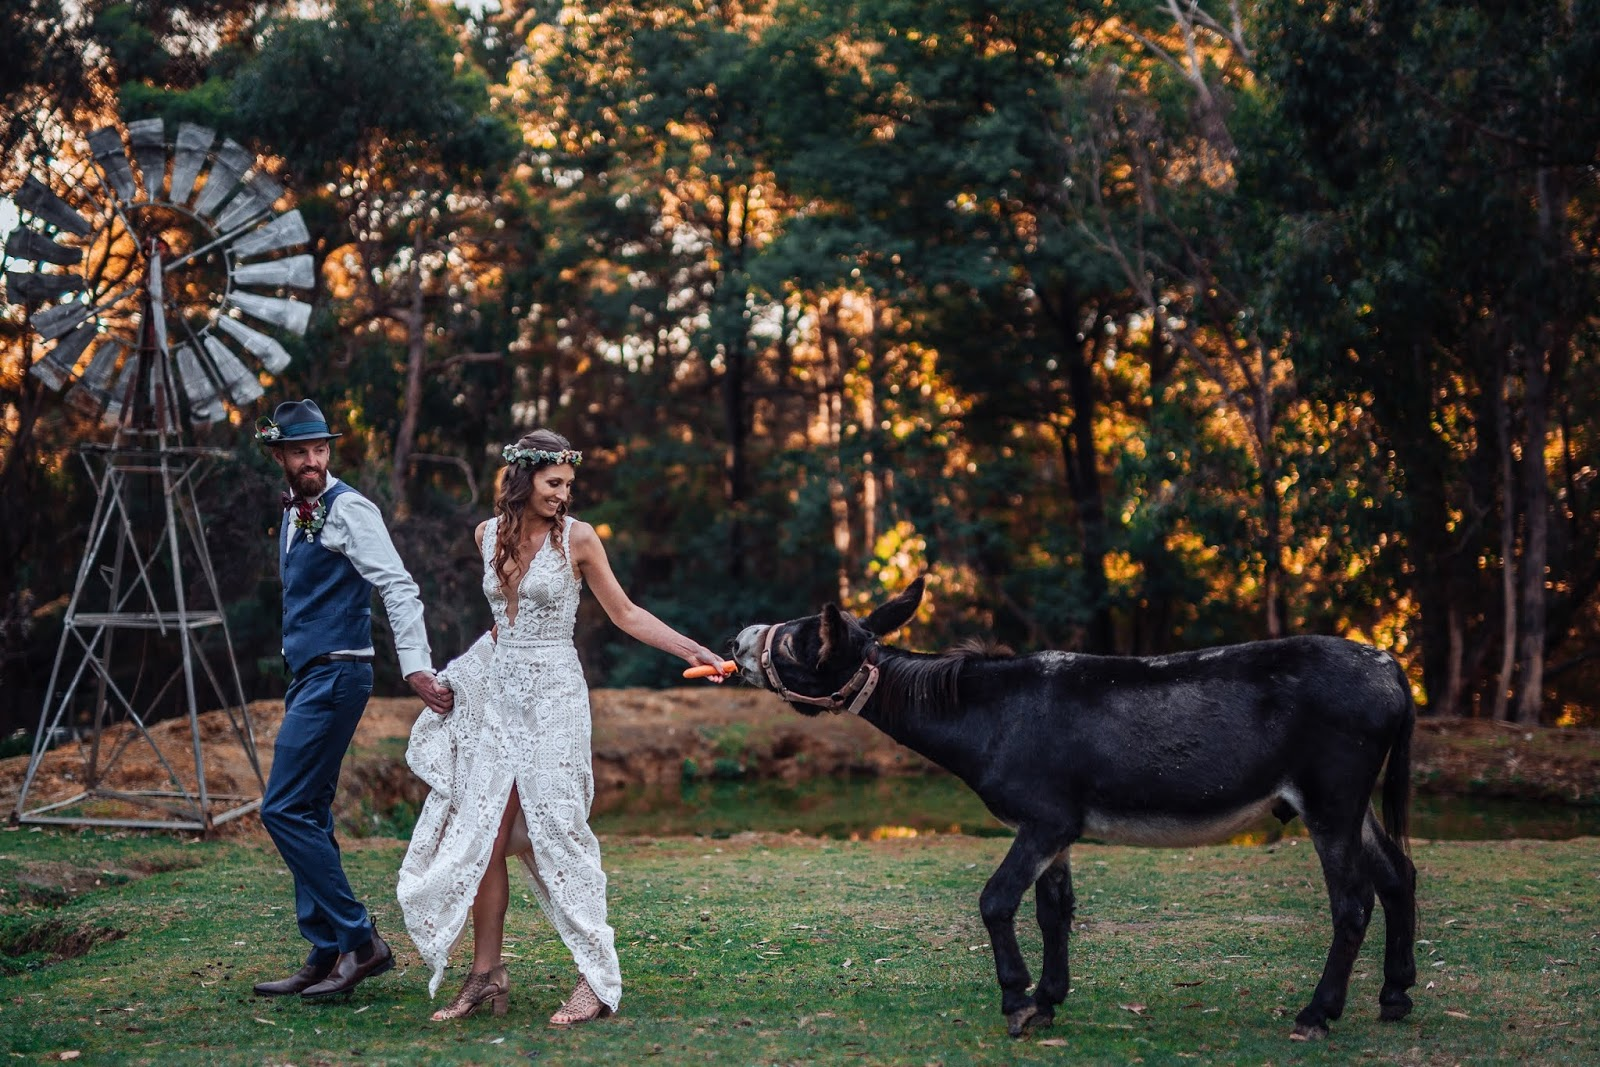 EMMA WISE PHOTOGRAPHY RANCH WEDDING VENUE MONBULK VICTORIA